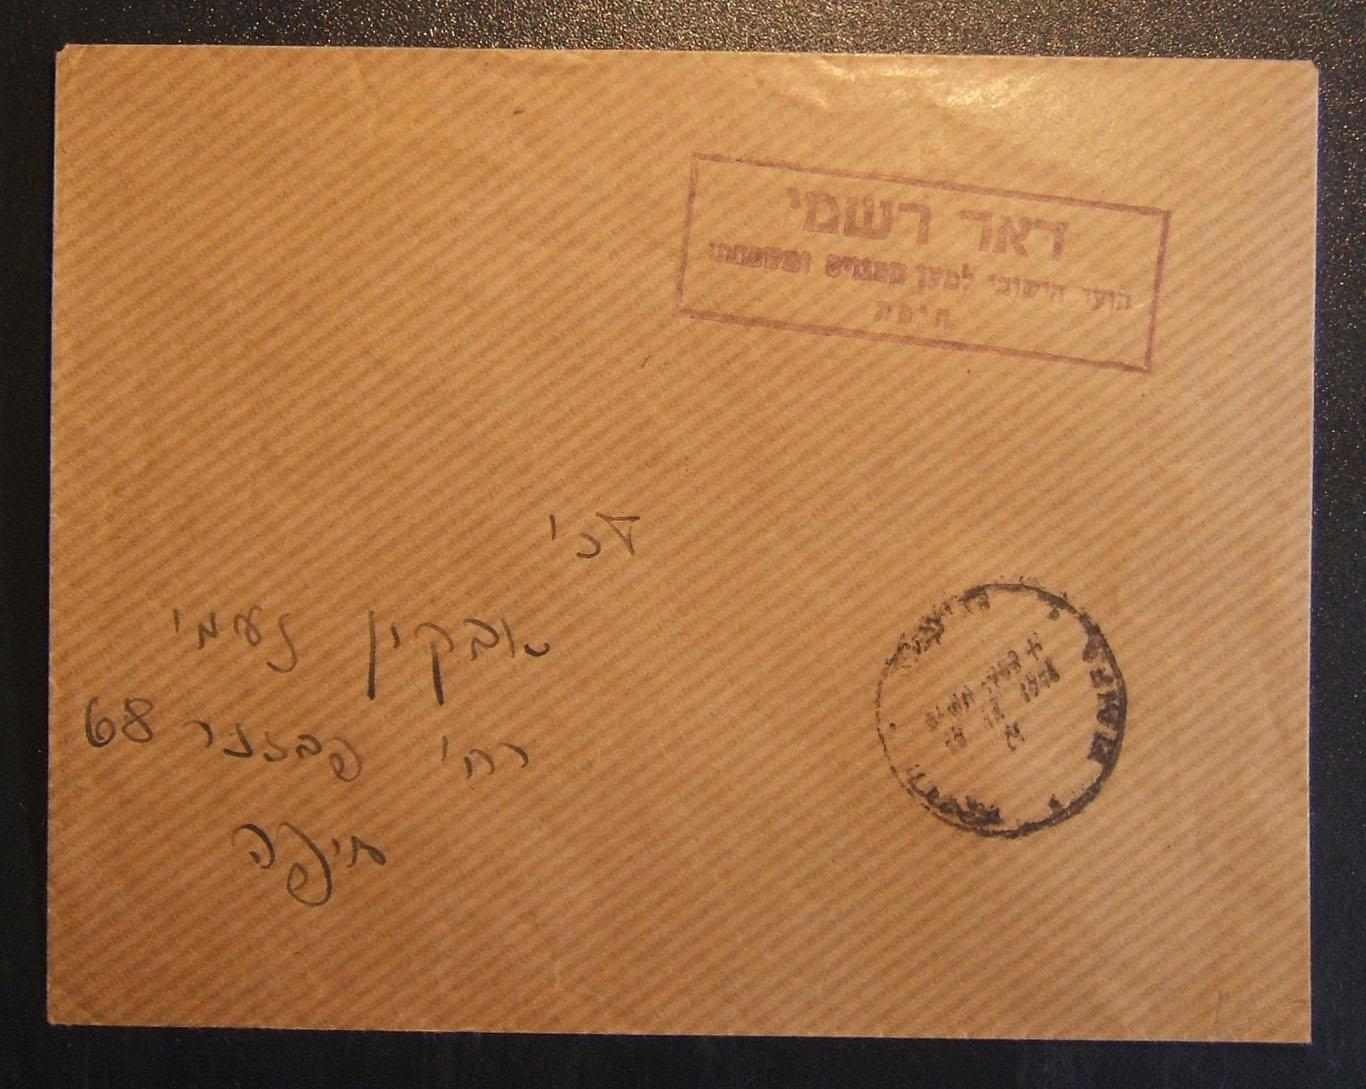 Unfranked wartime mail ex Committee Enlisted Soldier to Haifa address, Dec. 1948